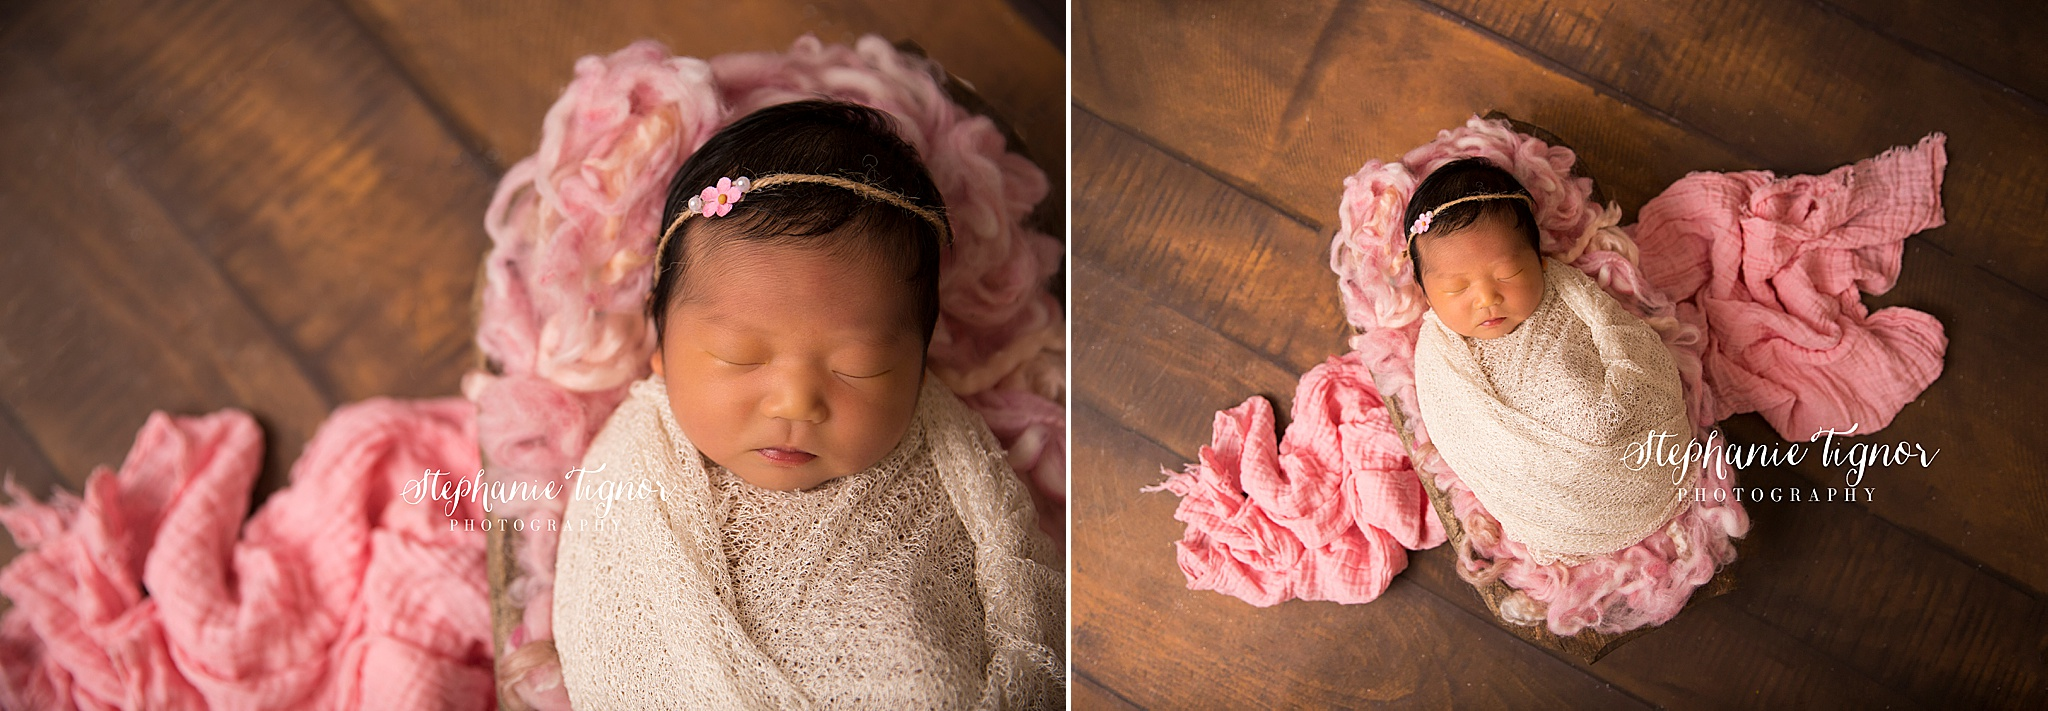 Stephanie Tignor Photography_Newborn Photographer_0070.jpg